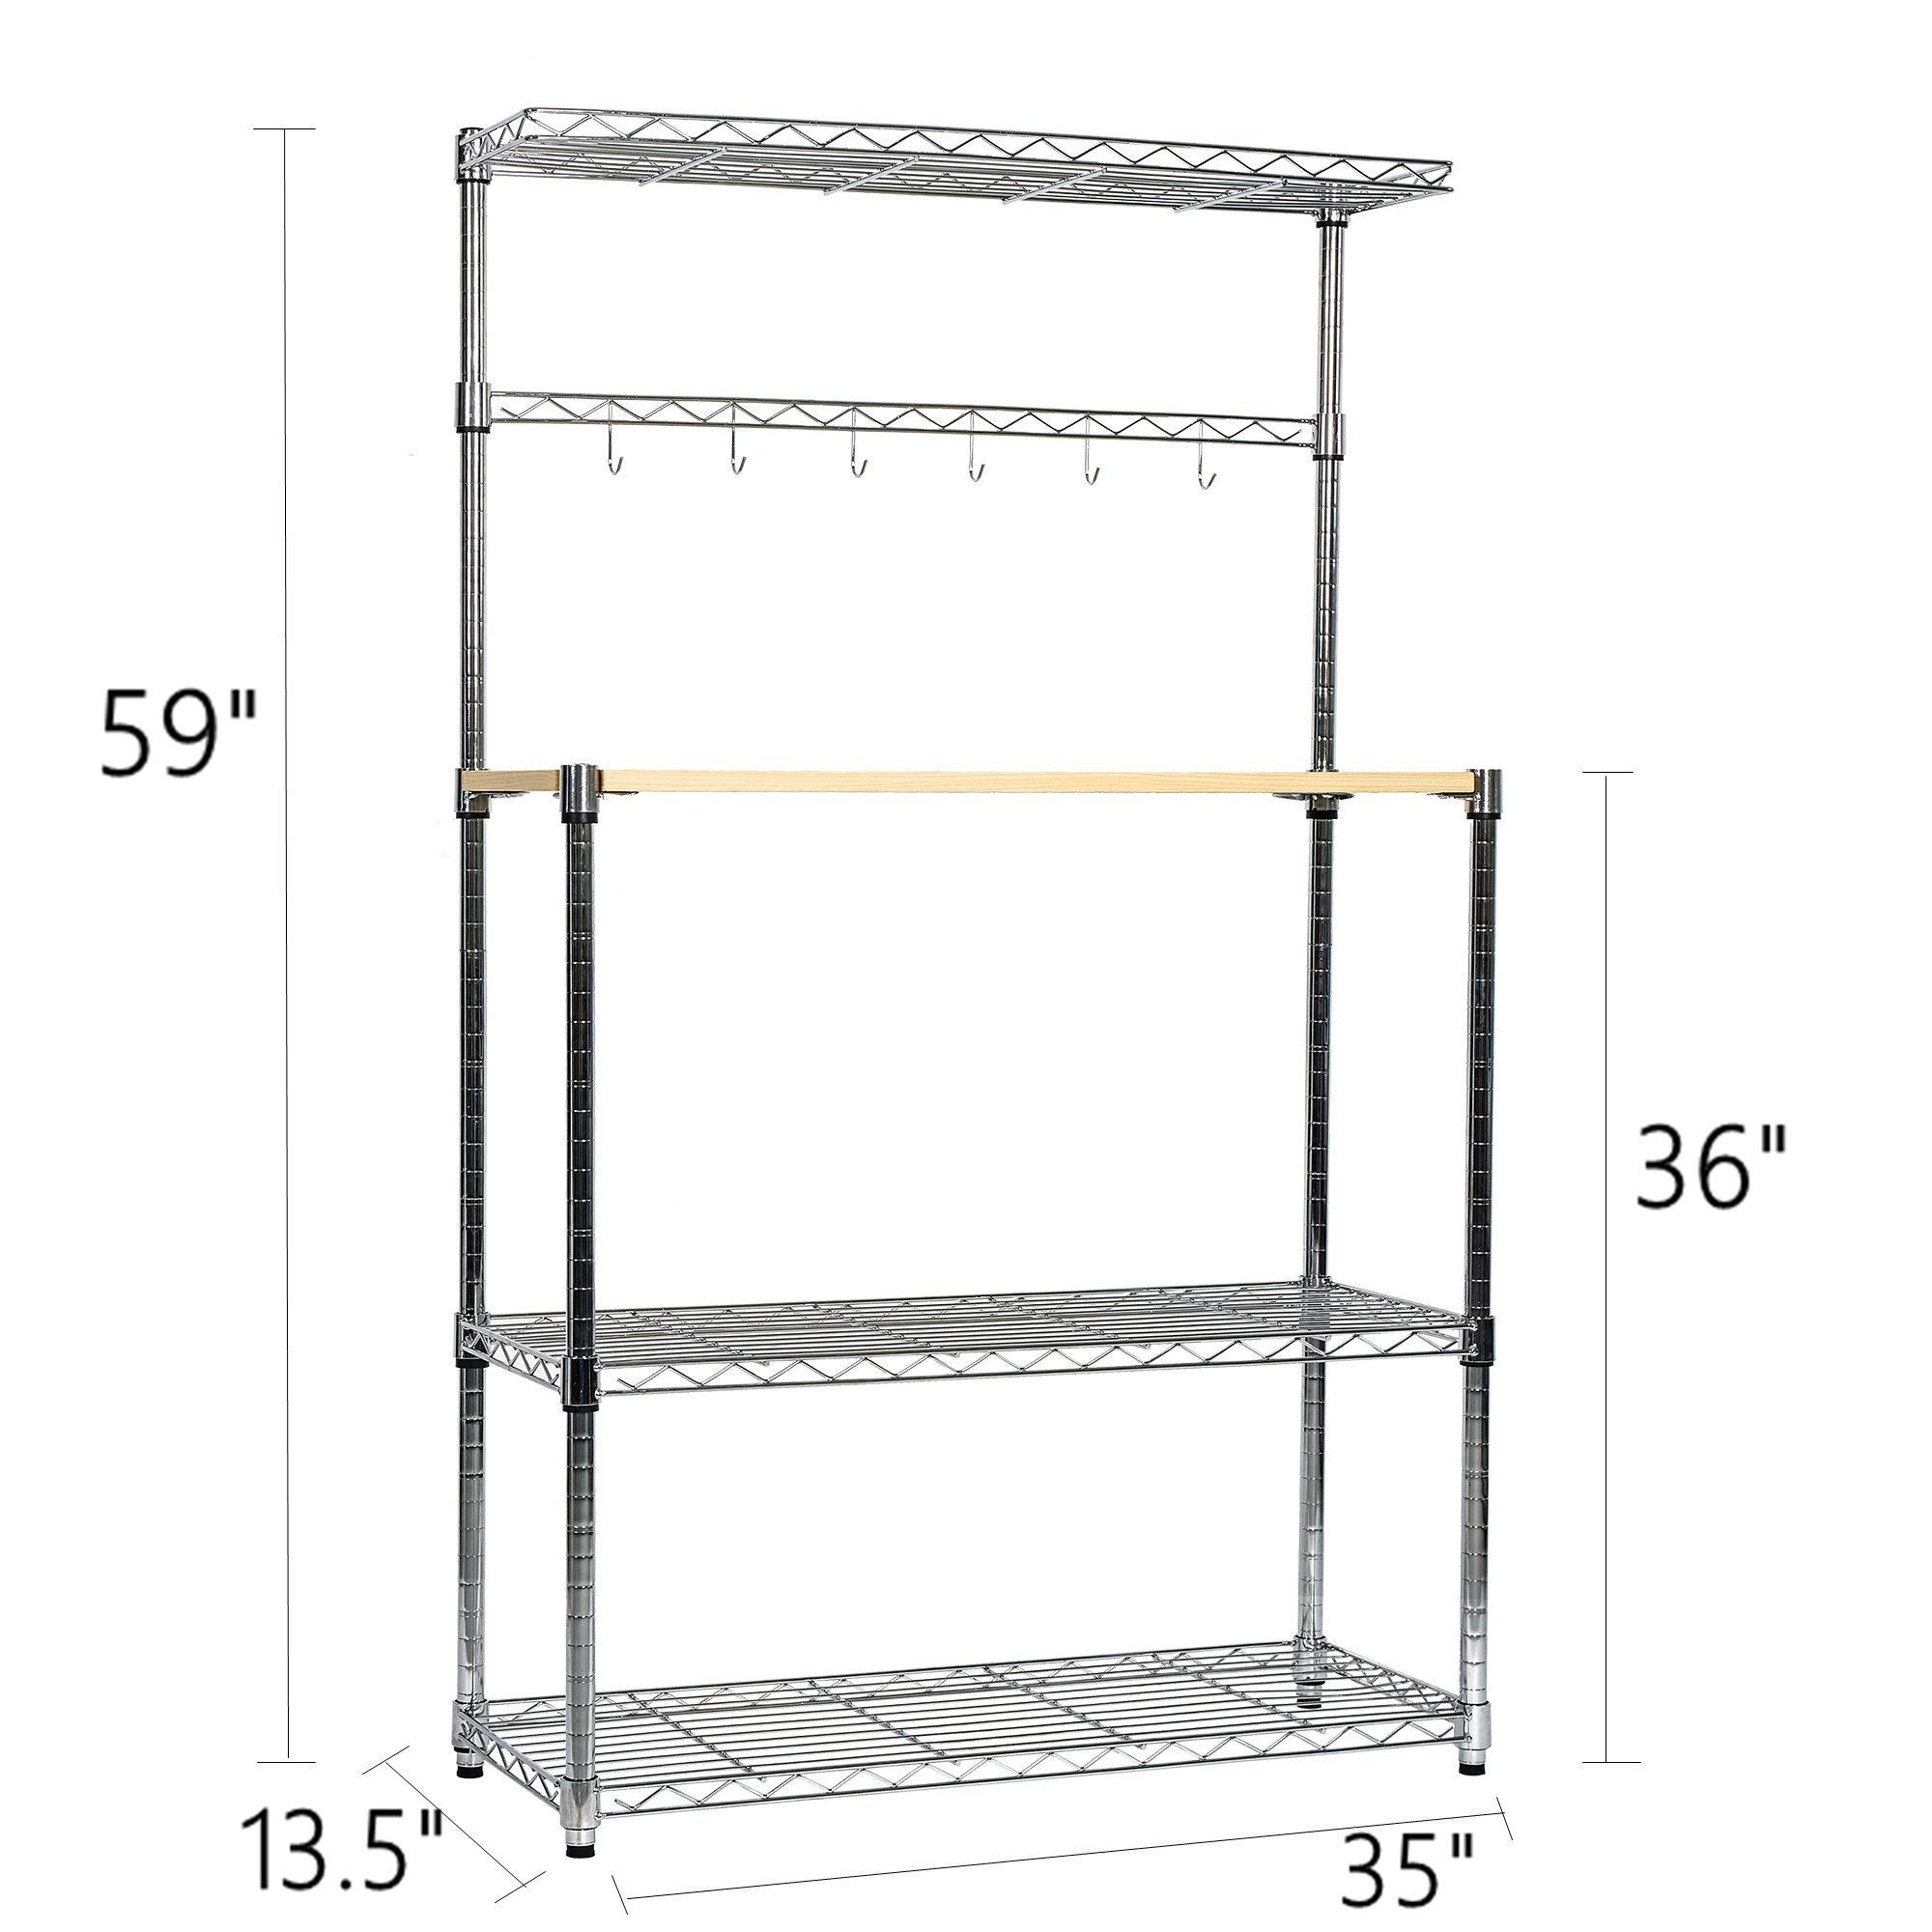 Livebest 4-Tier Kitchen Standing Baker's Rack Adjustable Cart Microwave Storage Shelf with Wheels Chrome Shelves and Thicken Cutting Board (Large)